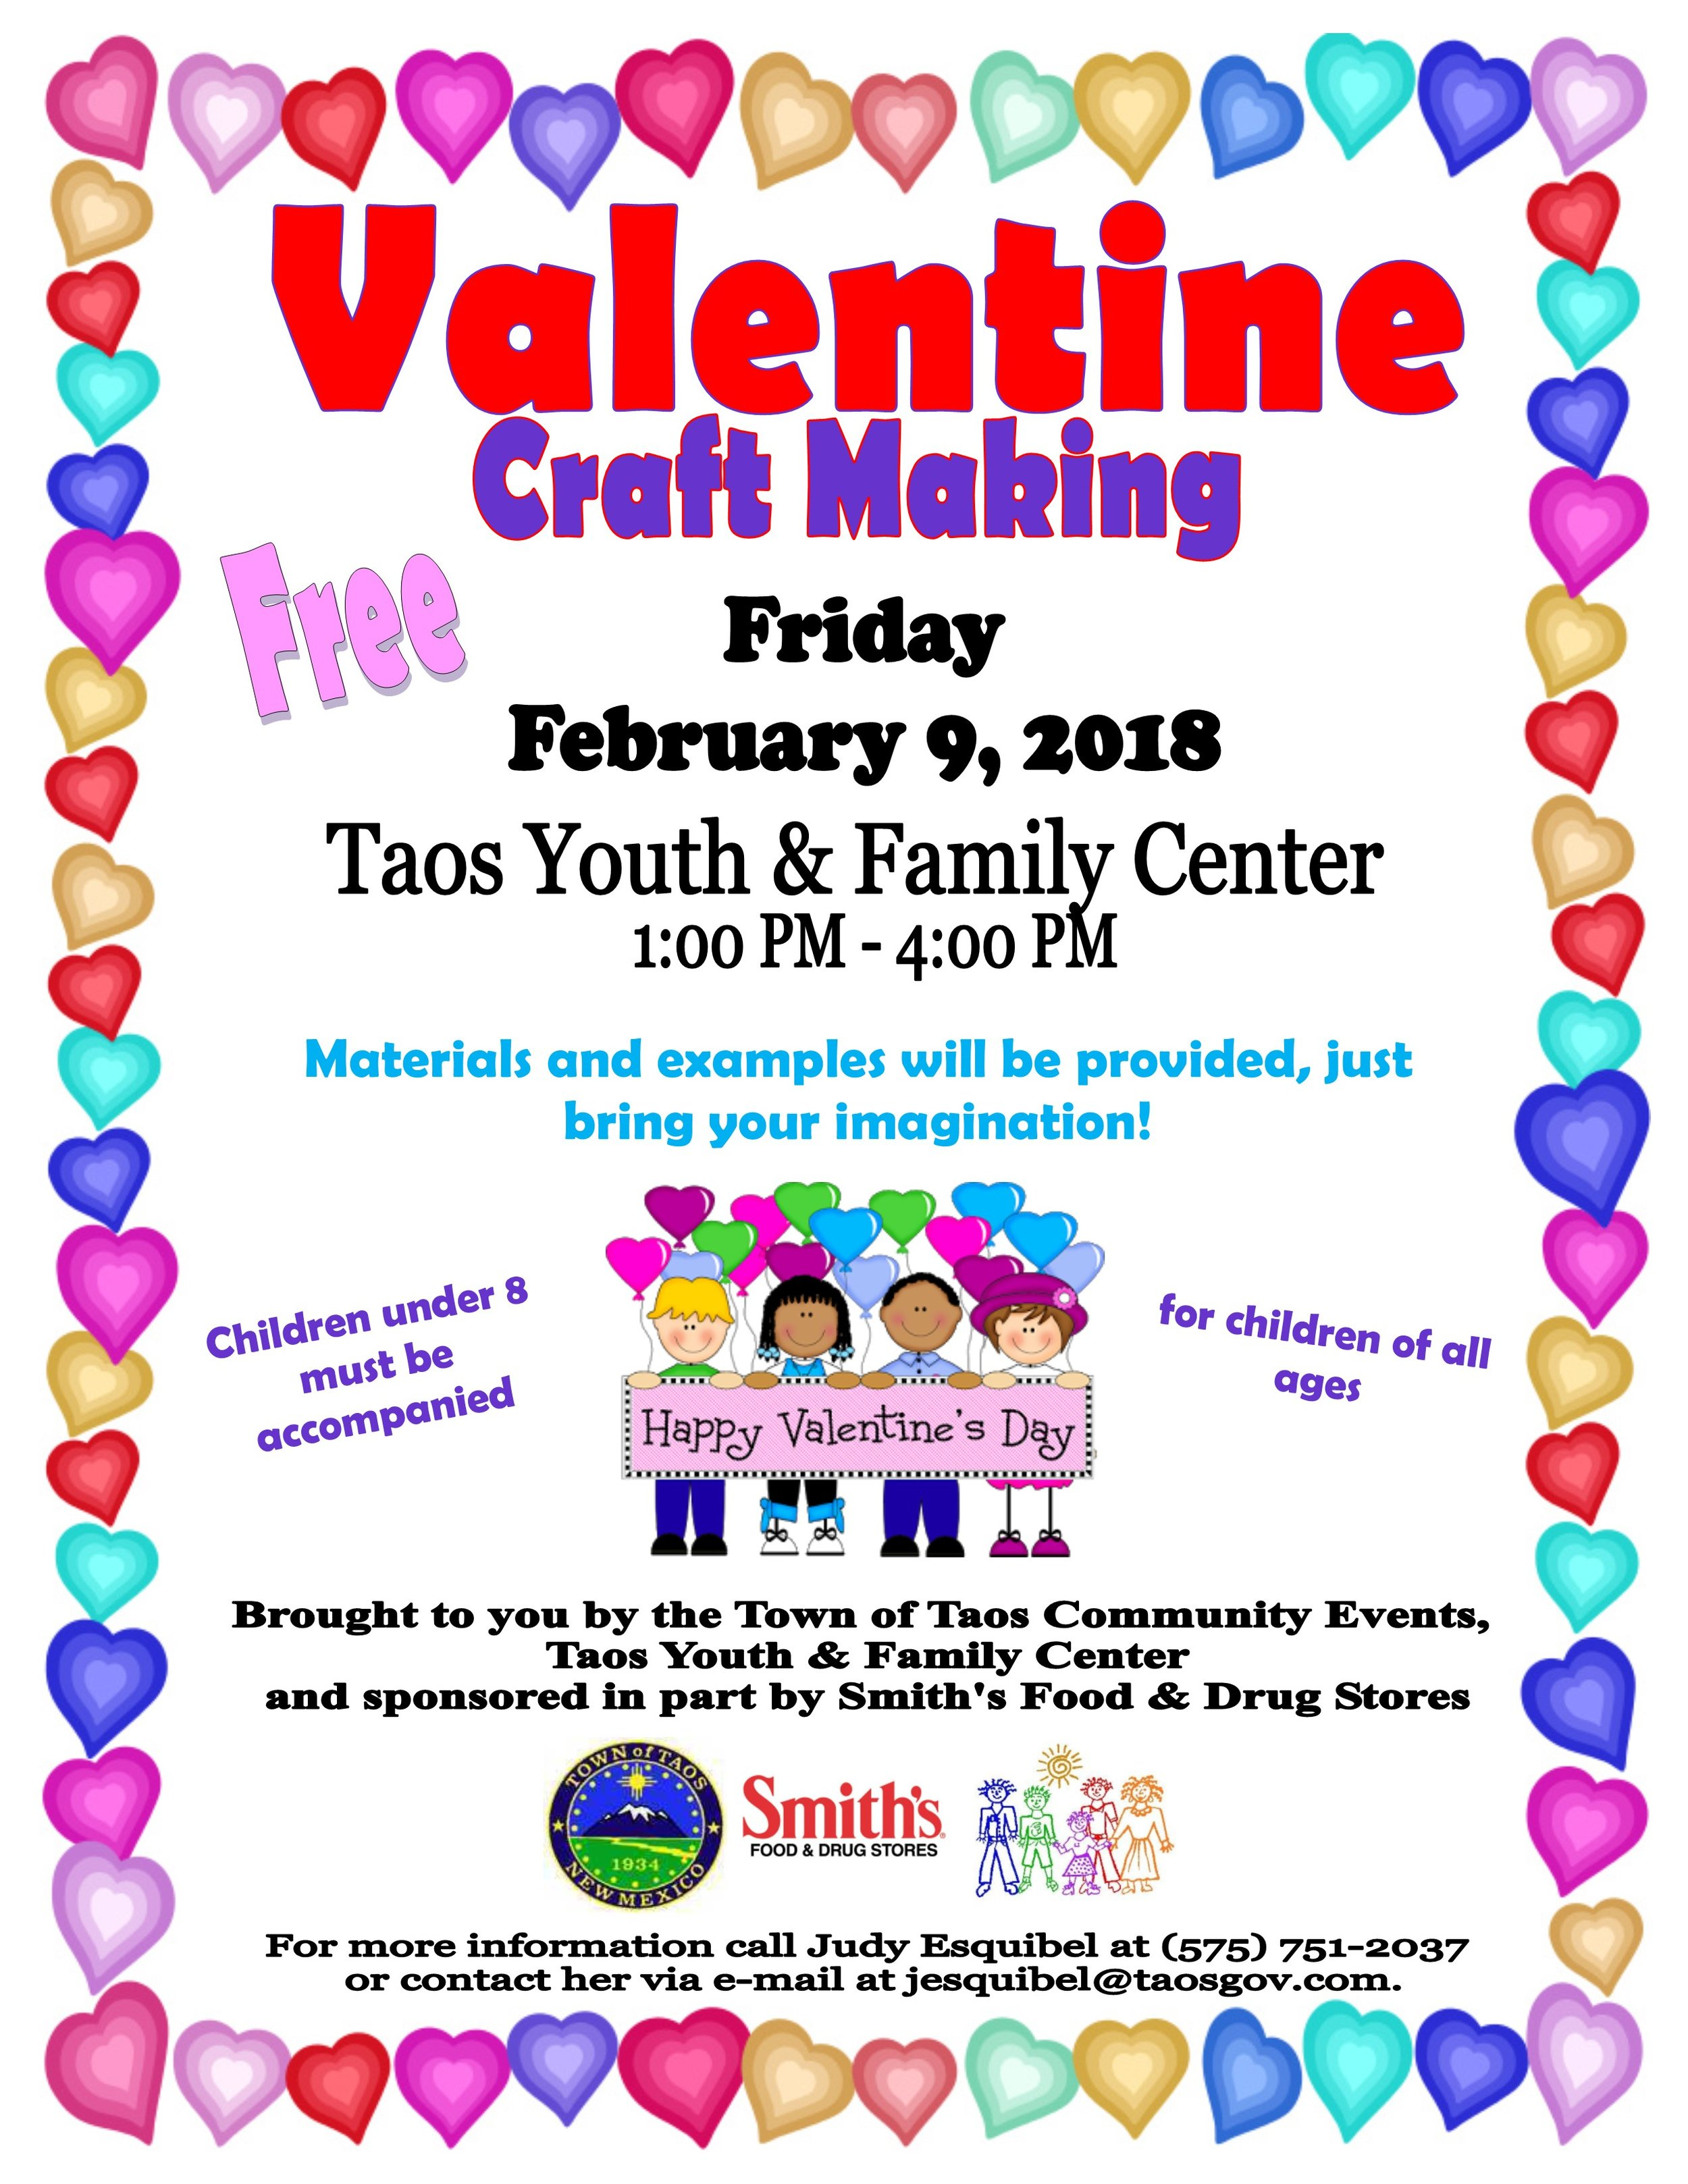 Valentine Craft Making Flyer 2018.jpg